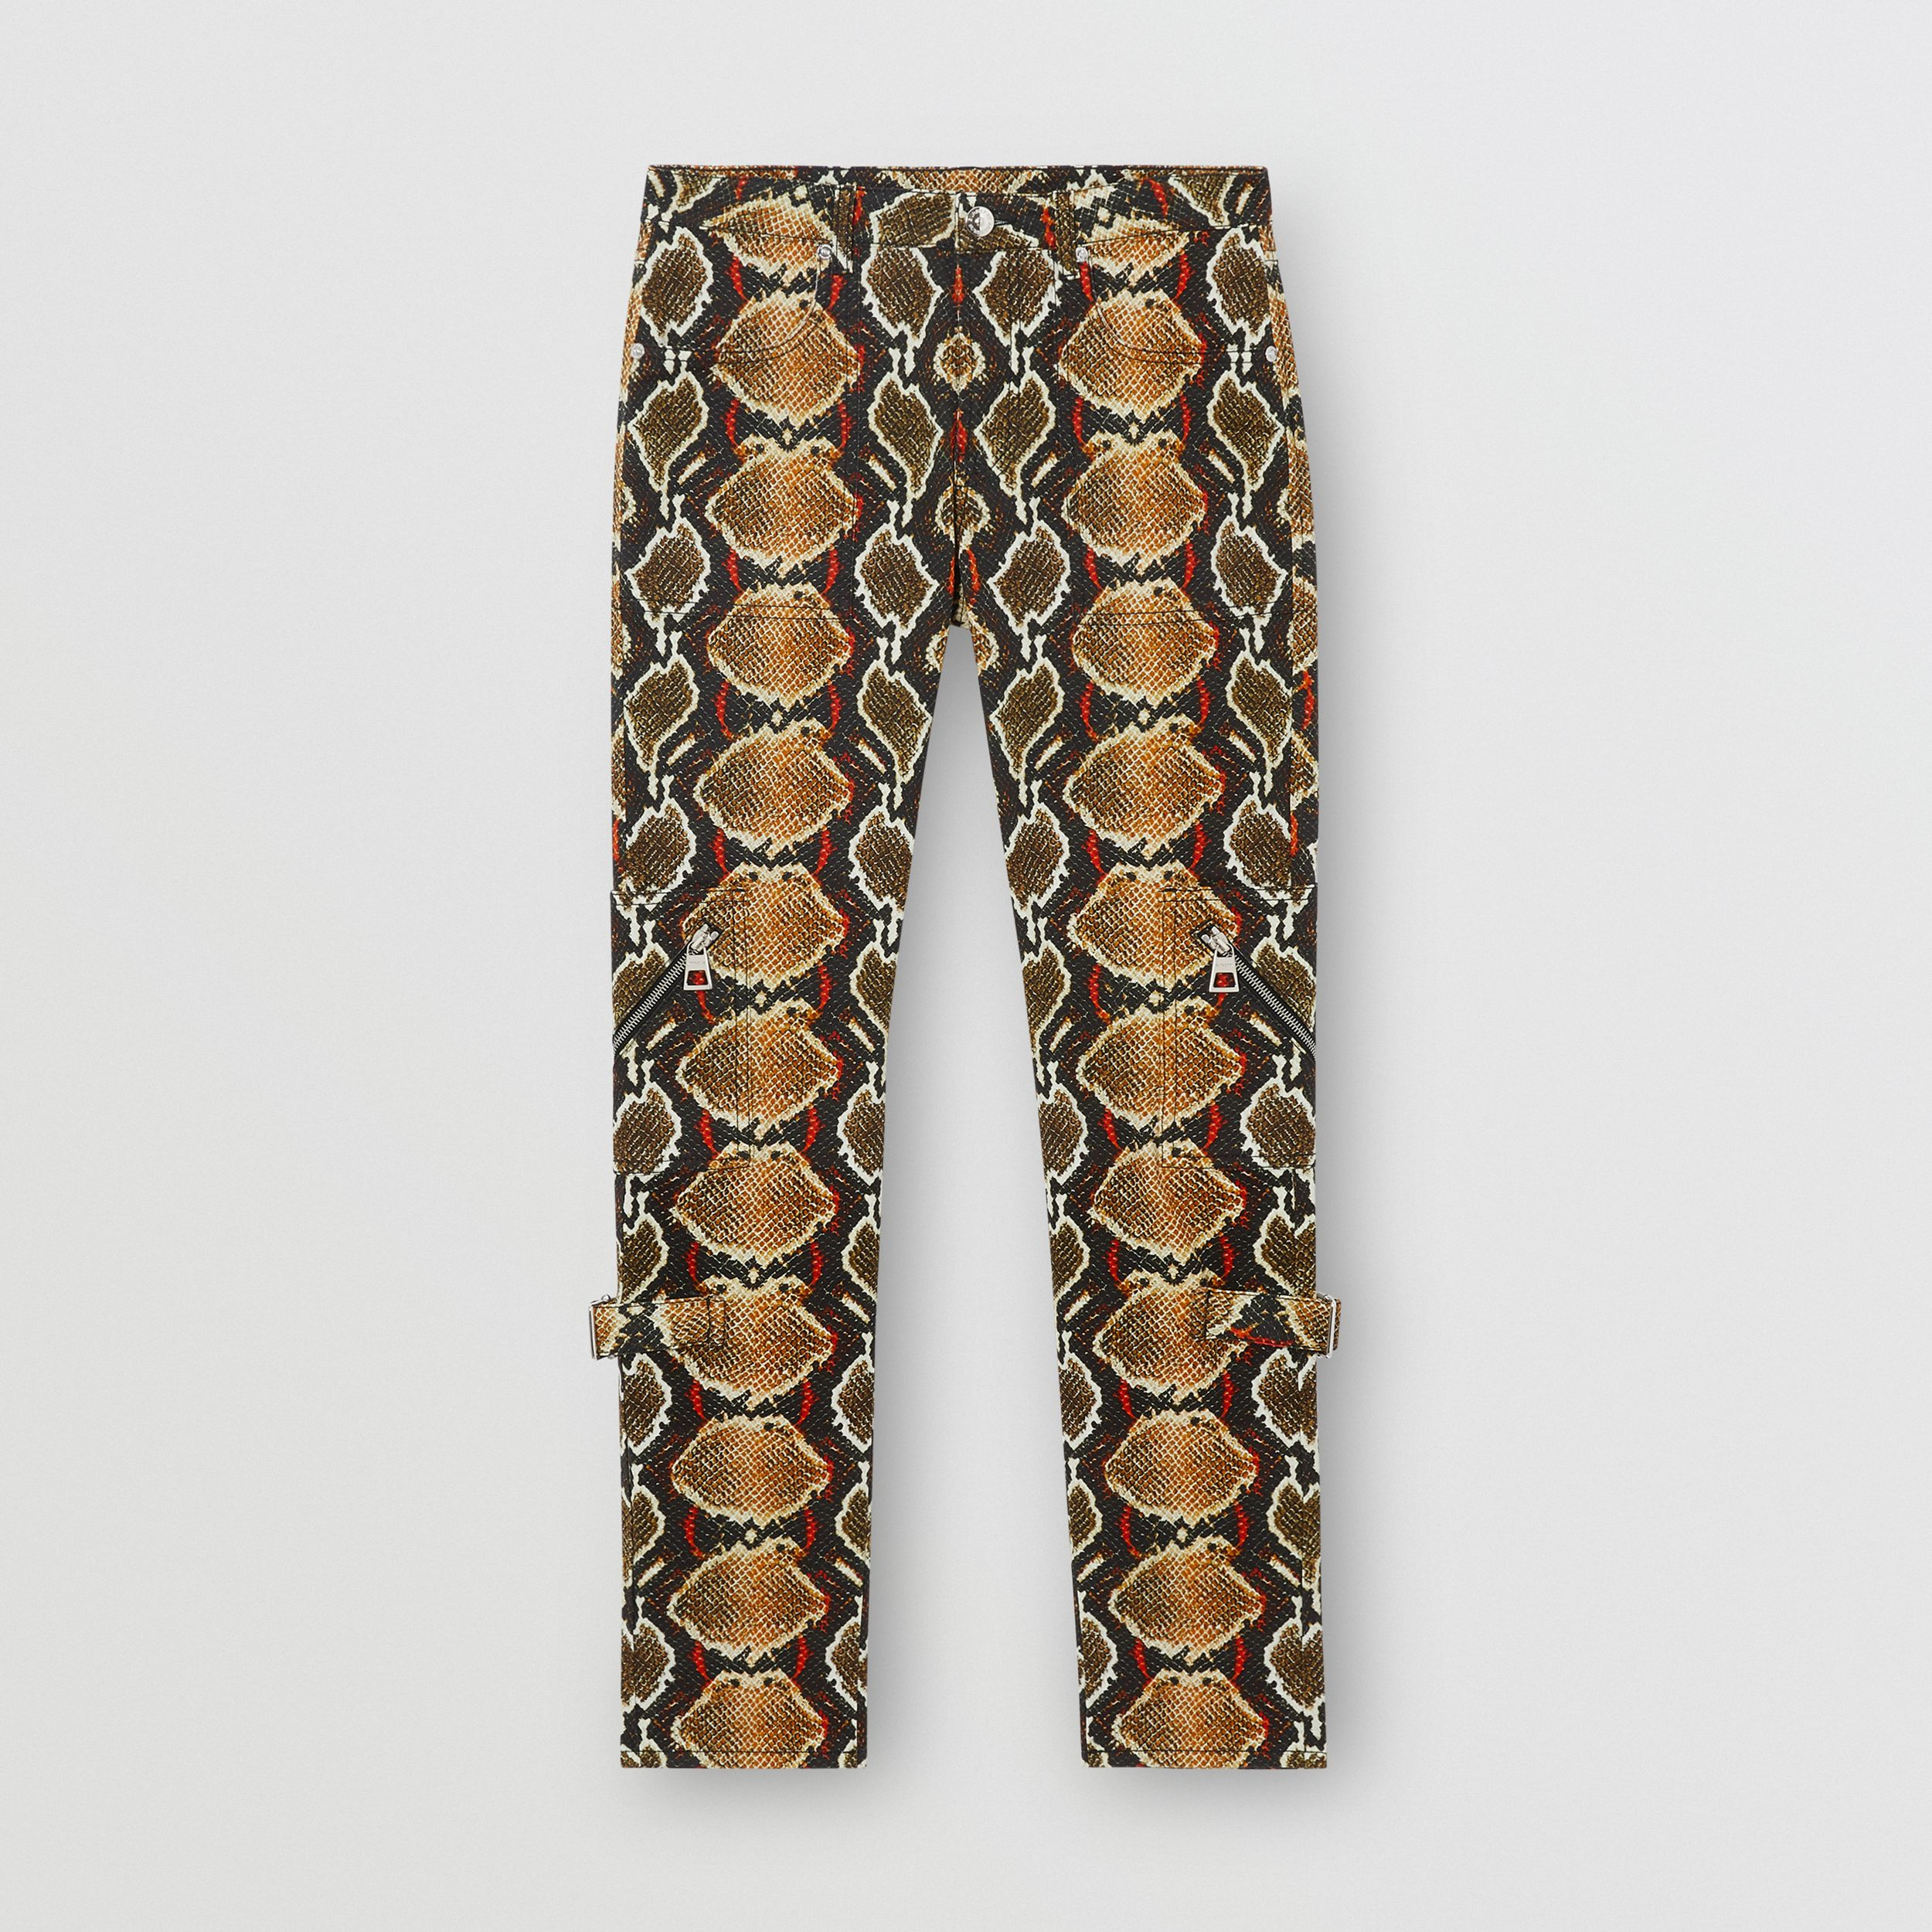 Skinny Fit Python Print Jeans in Soft Cocoa - Women | Burberry - 4